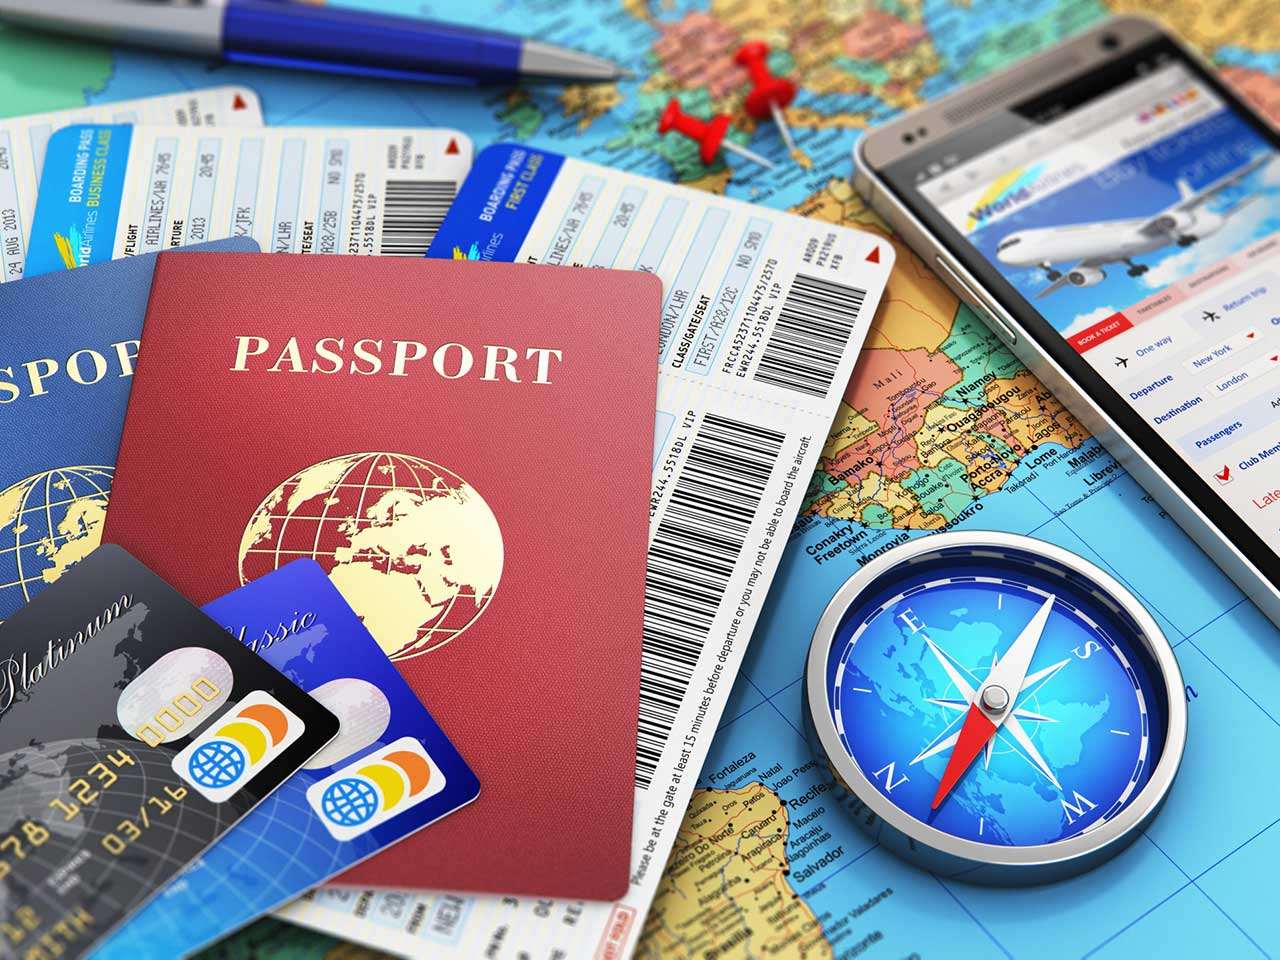 Passports, travel tickets, maps, credit cards and travel apps